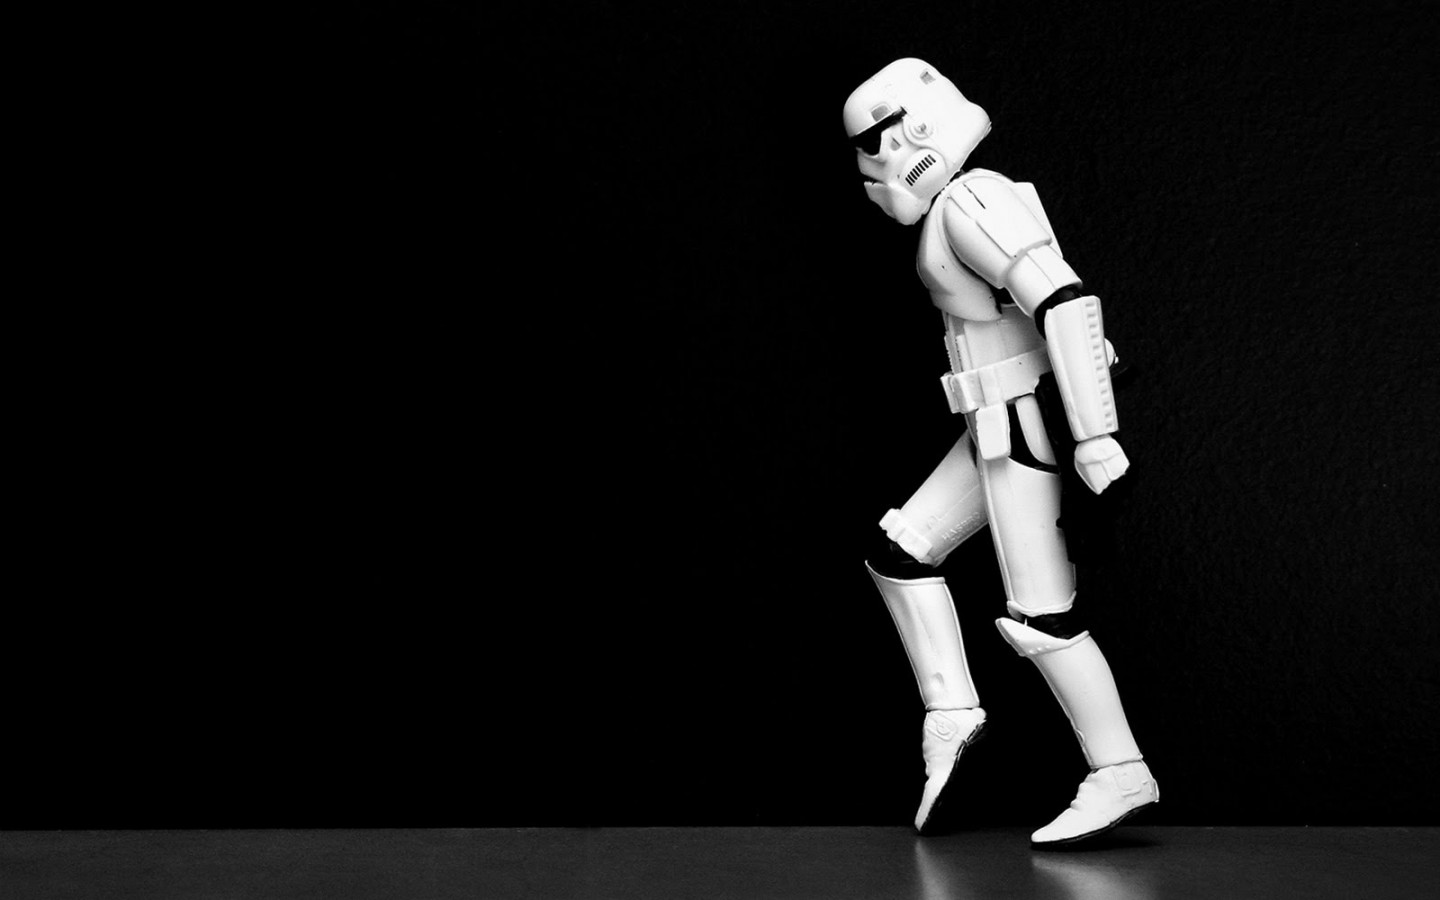 The-Imperial-Stormtroopers-Moonwalk-the-imperial-stormtroopers-moonwalk-star-wars-1440x900